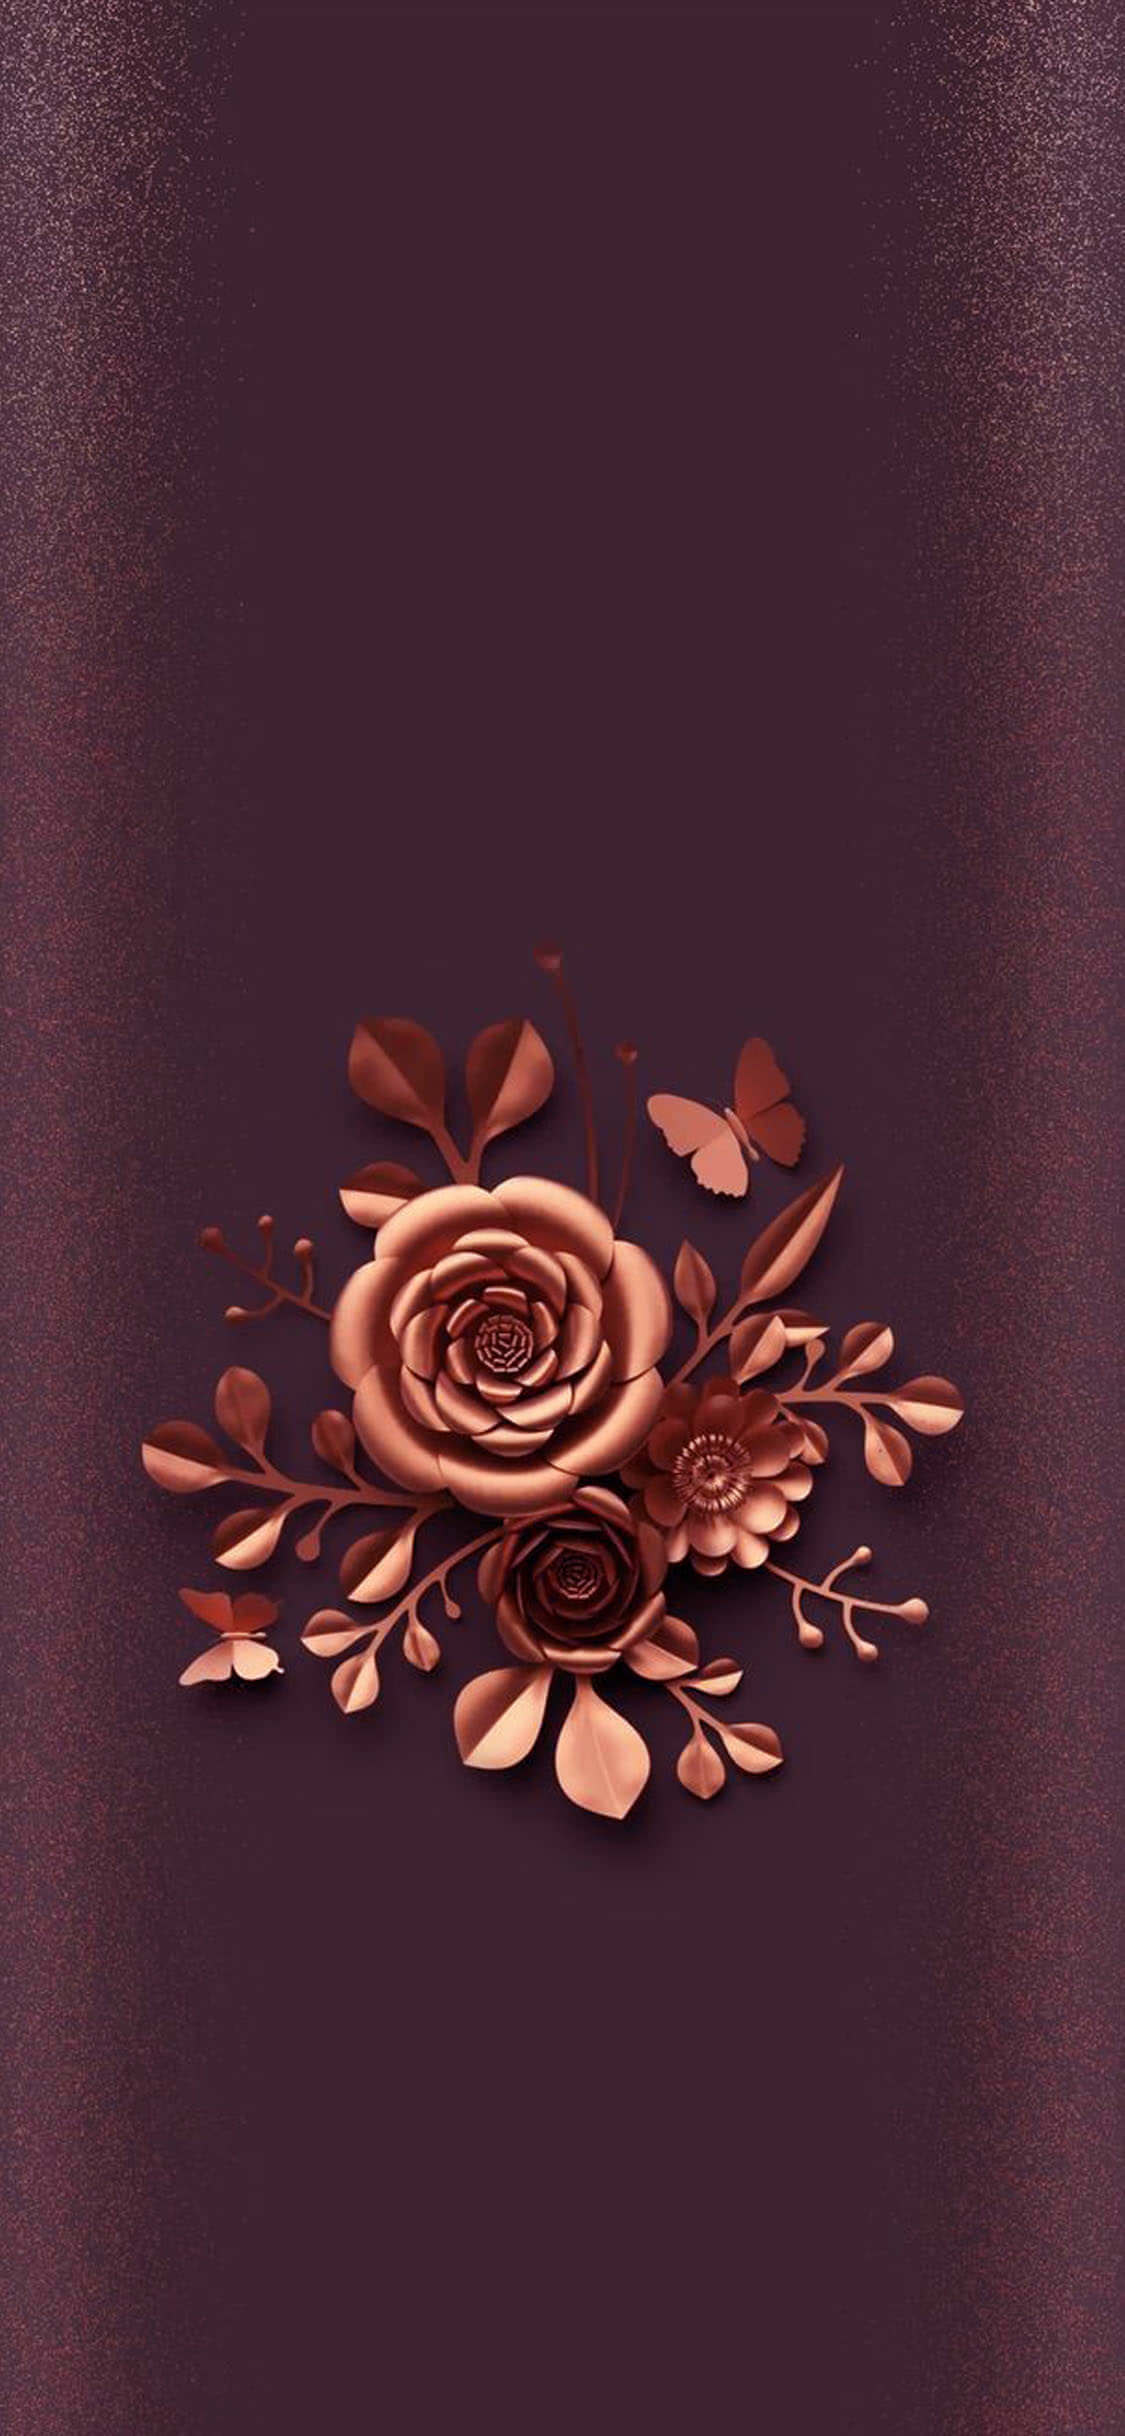 28 Best Flowers Iphone Wallpapers Backgrounds Templatefor